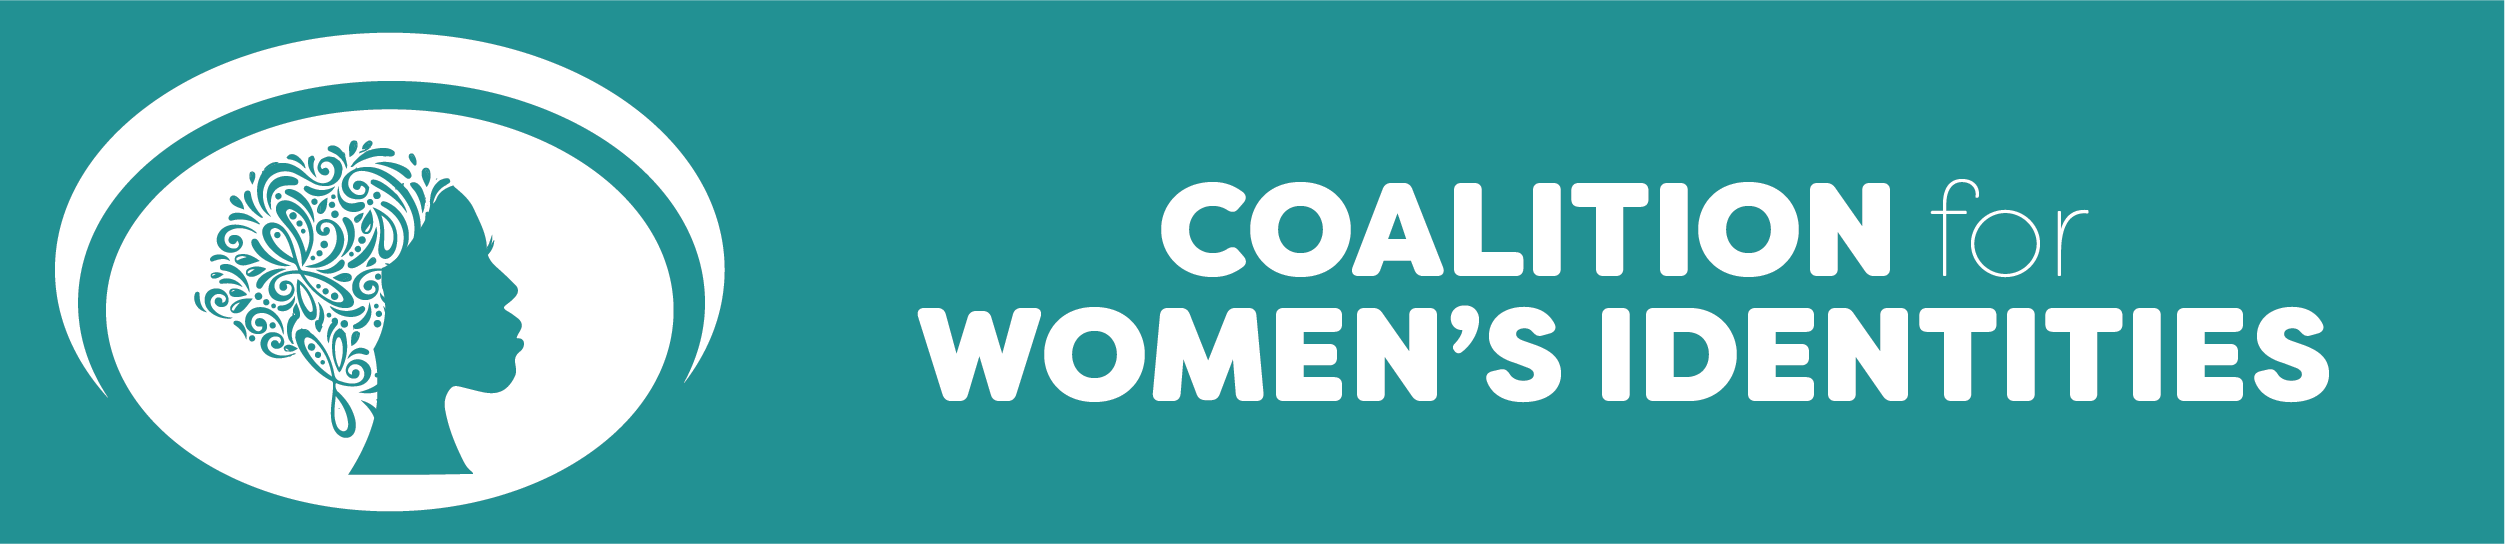 COALITION FOR WOMEN'S IDENTITIES